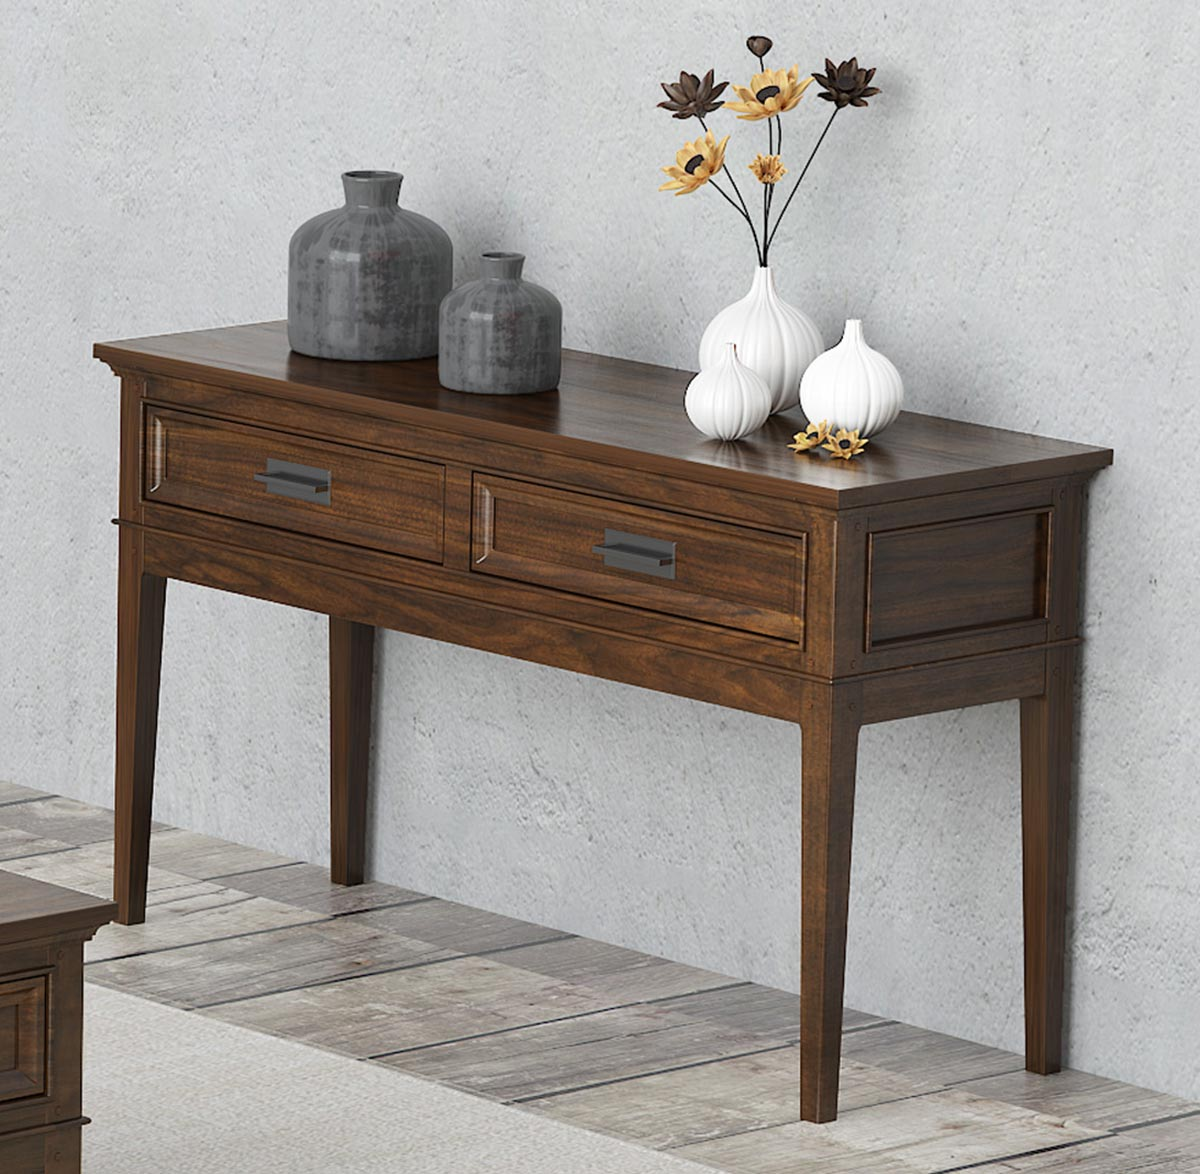 Homelegance Frazier Park Sofa Table with Two Functional Drawers - Brown Cherry